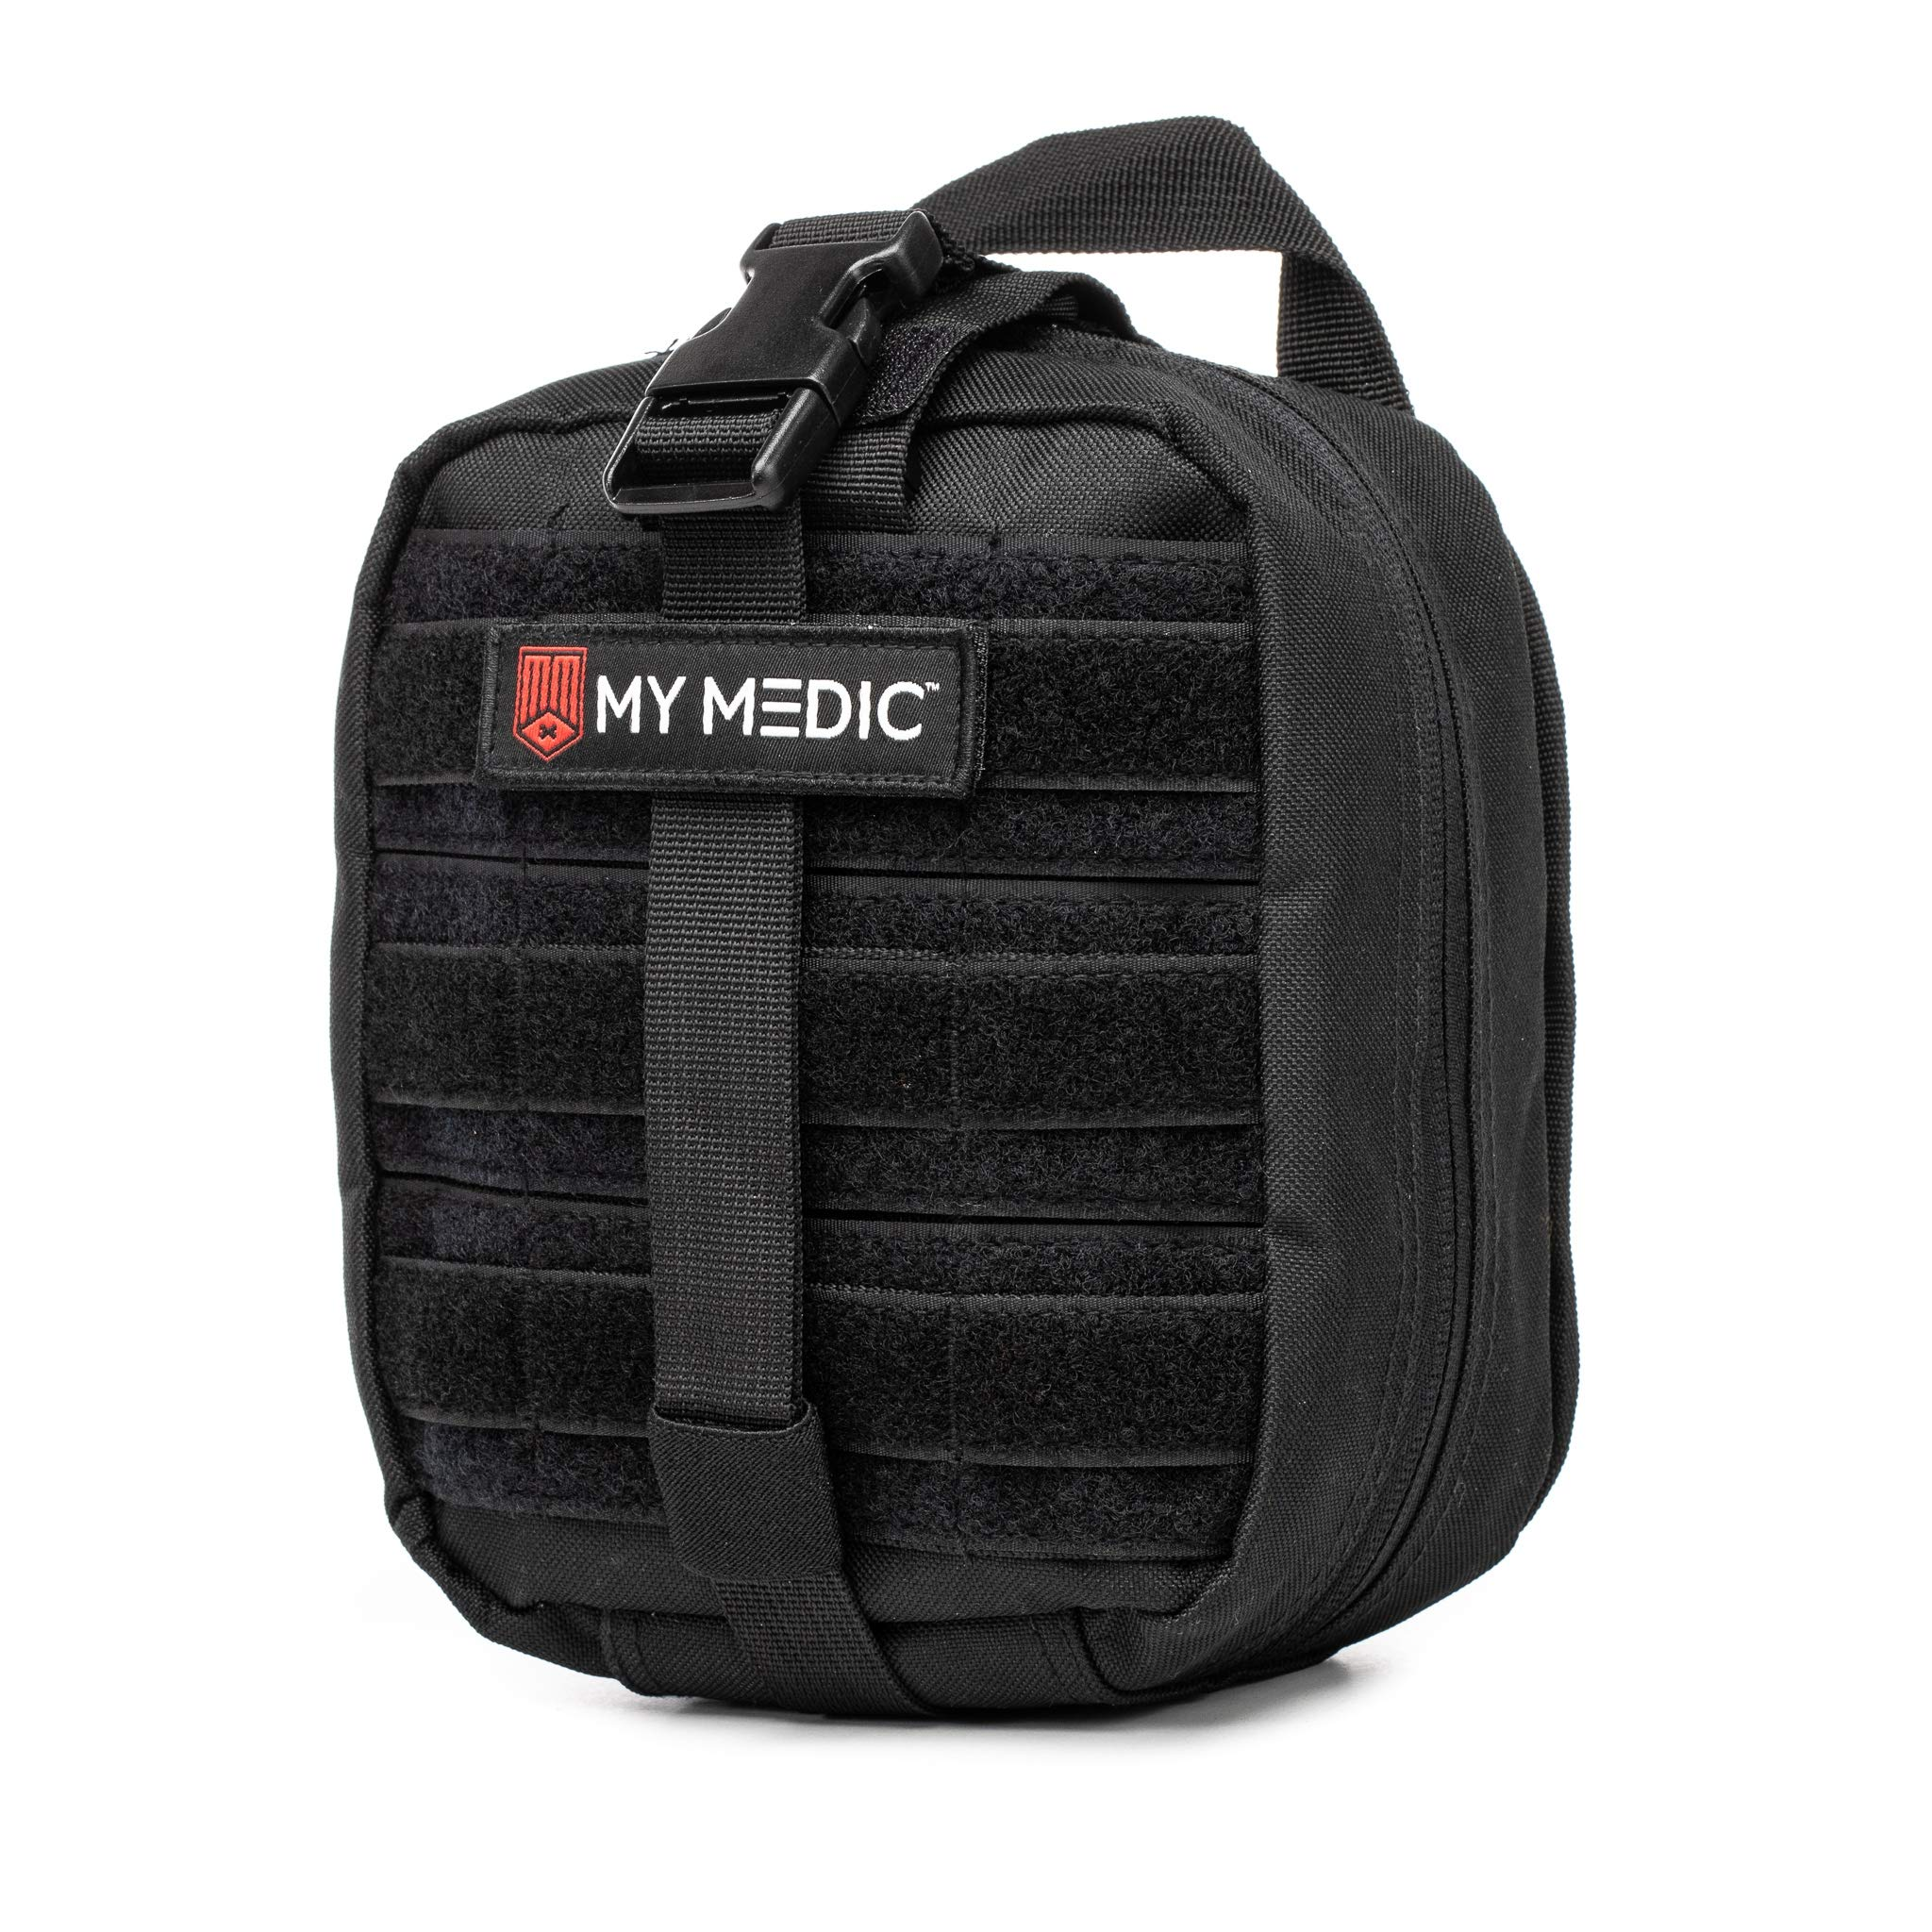 My Medic MyFak First Aid Kit - Water Resistant Bag, Bandages, Burn Aids, CPR Shield, Survival First Aid Kit, Airway, Tourniquet, Stainless Steel Instruments - Basic - Black